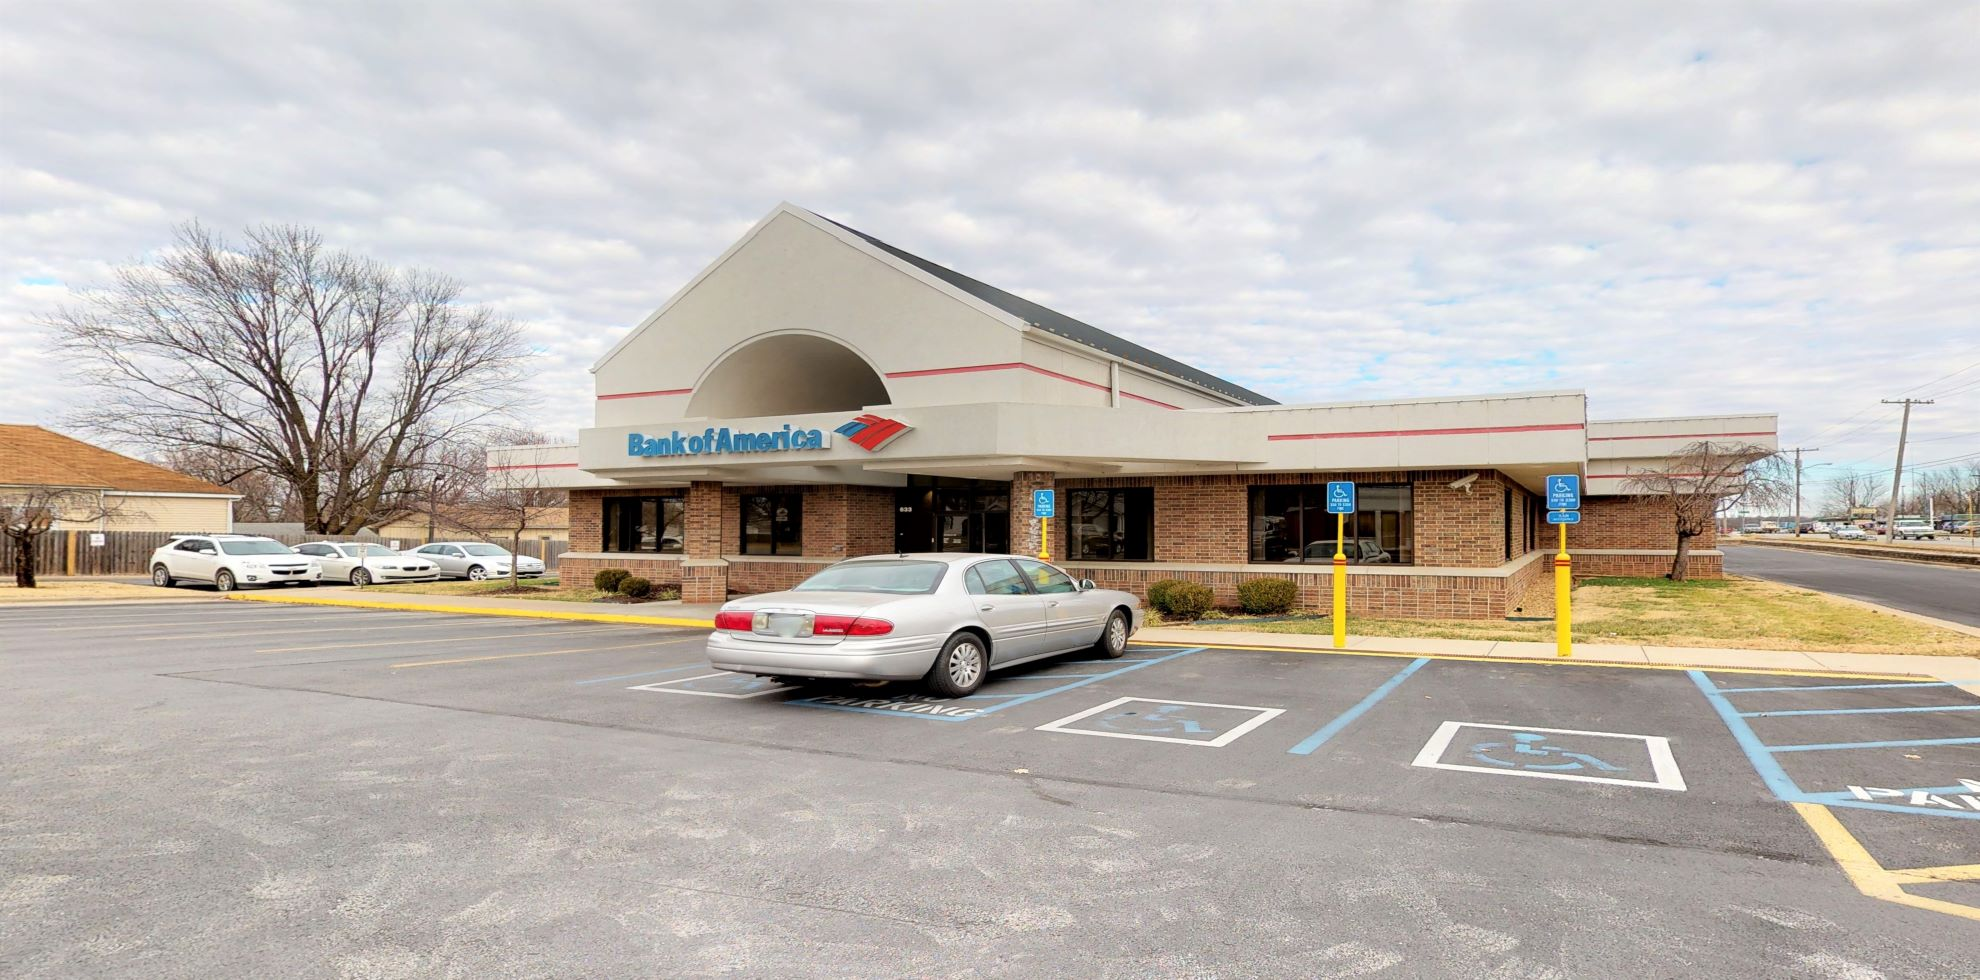 Bank of America financial center with drive-thru ATM   633 W Kearney St, Springfield, MO 65803